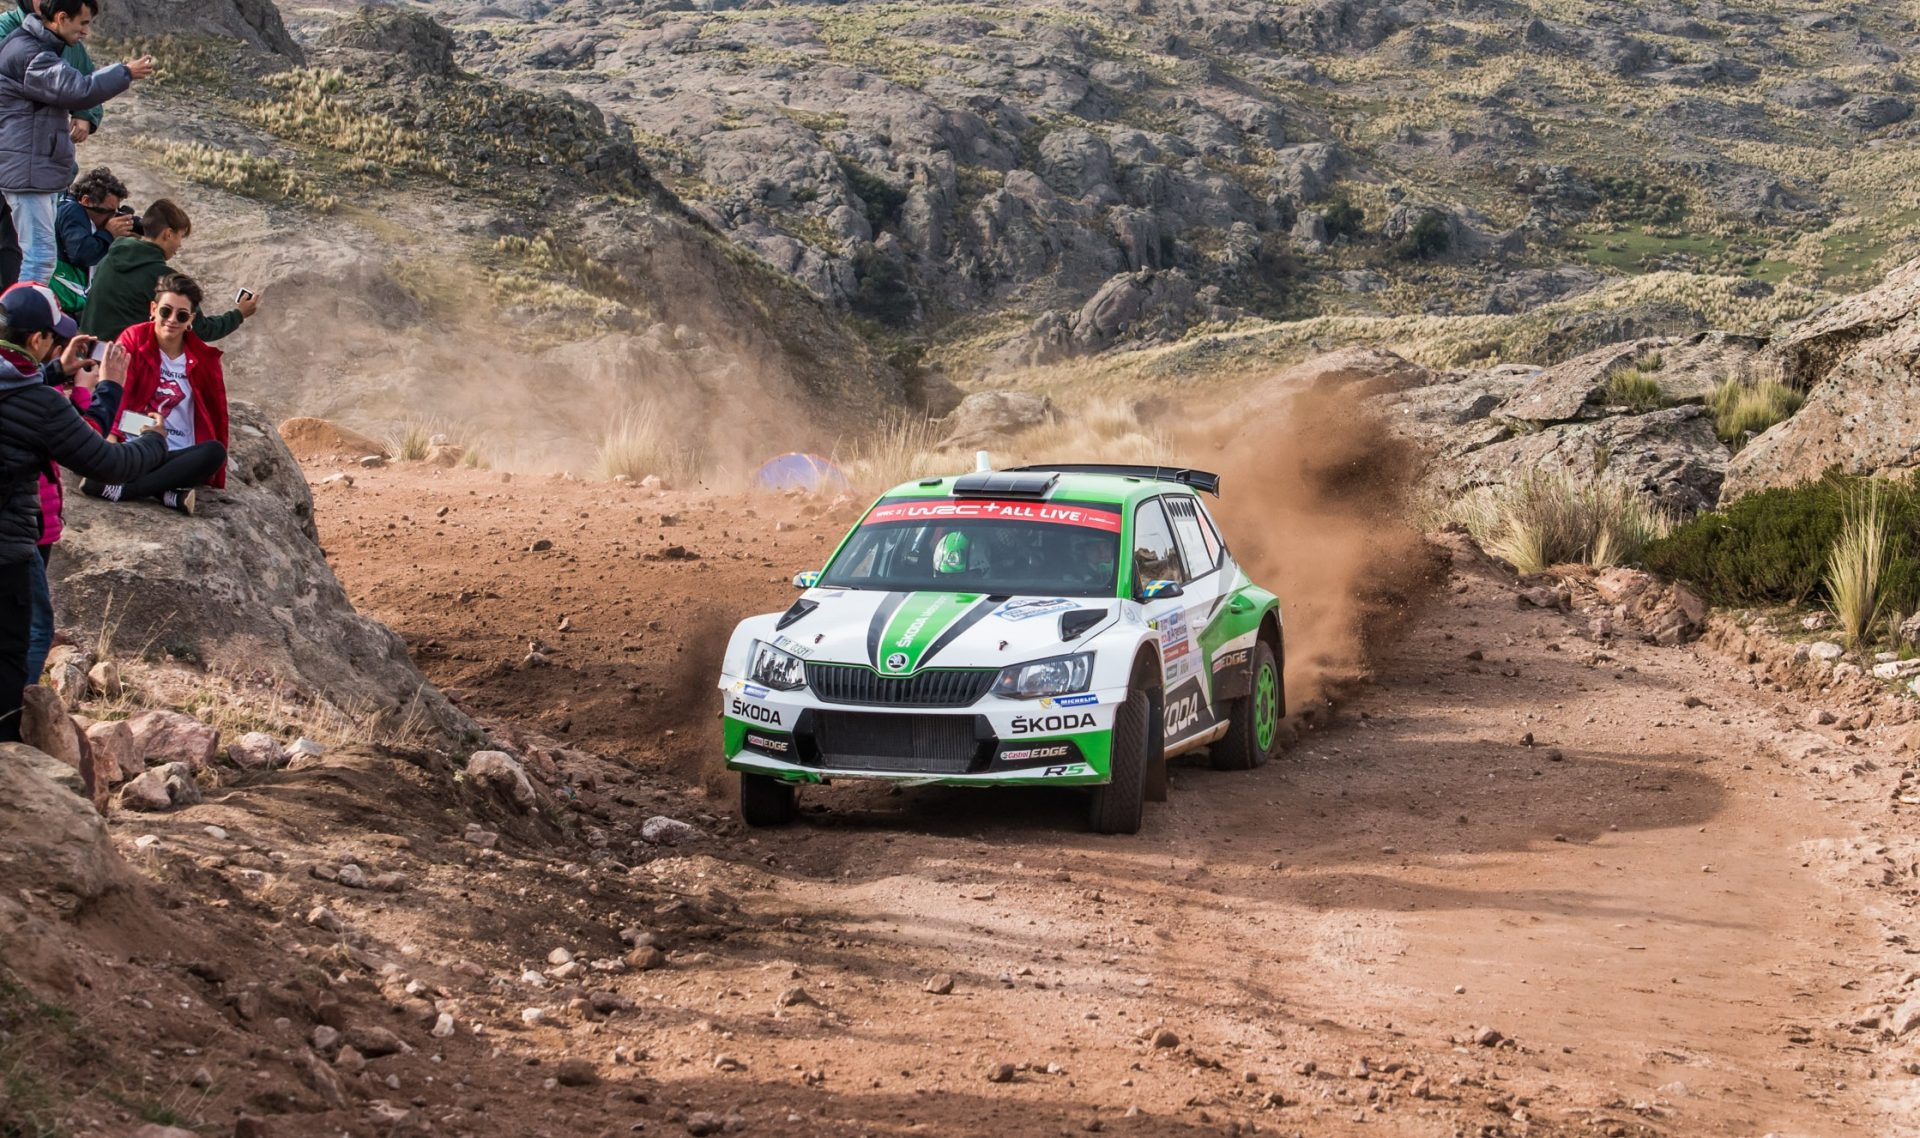 Rally Argentina 2019: Current News and Results